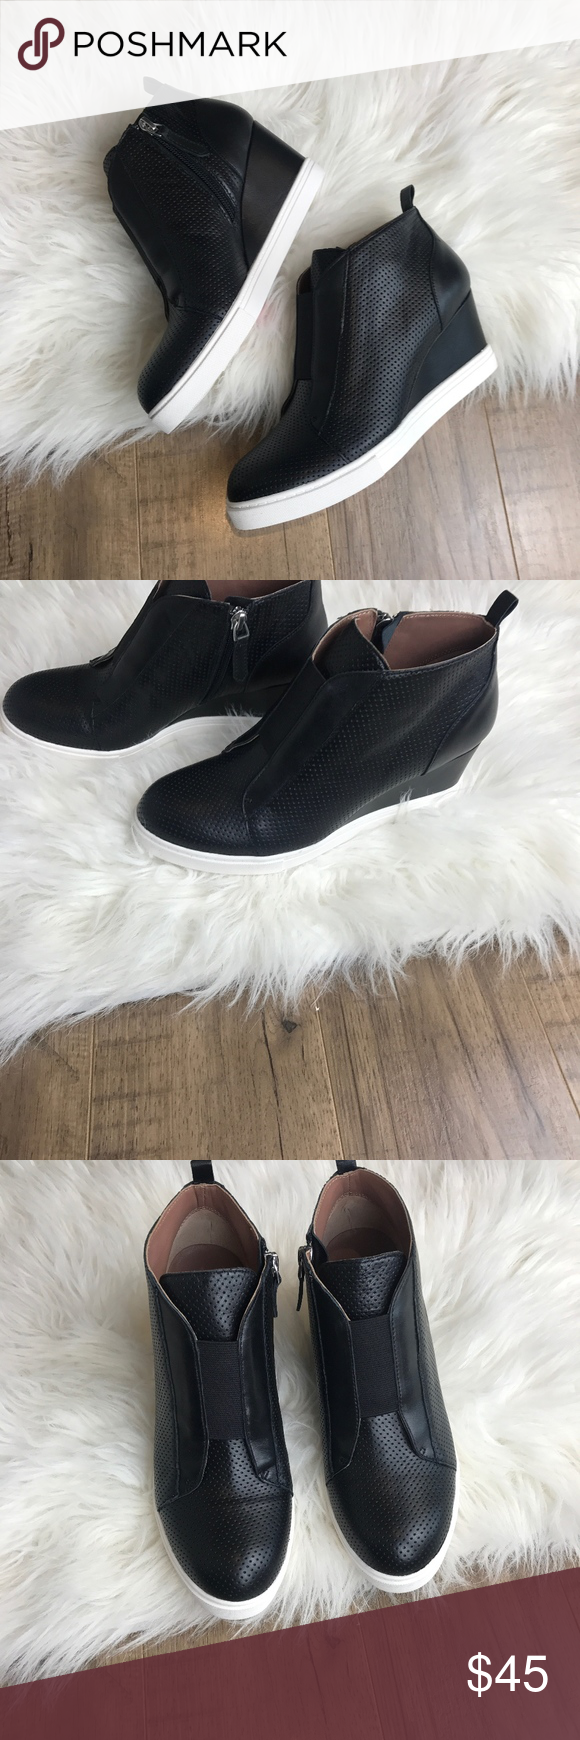 18a0fafad565 Linea Paolo Wedge Sneaker NEW Brand NEW in box Wedge Sneaker Retails for   120 at nordstrom Women s Size 7.5M Linea Paola Shoes Wedges